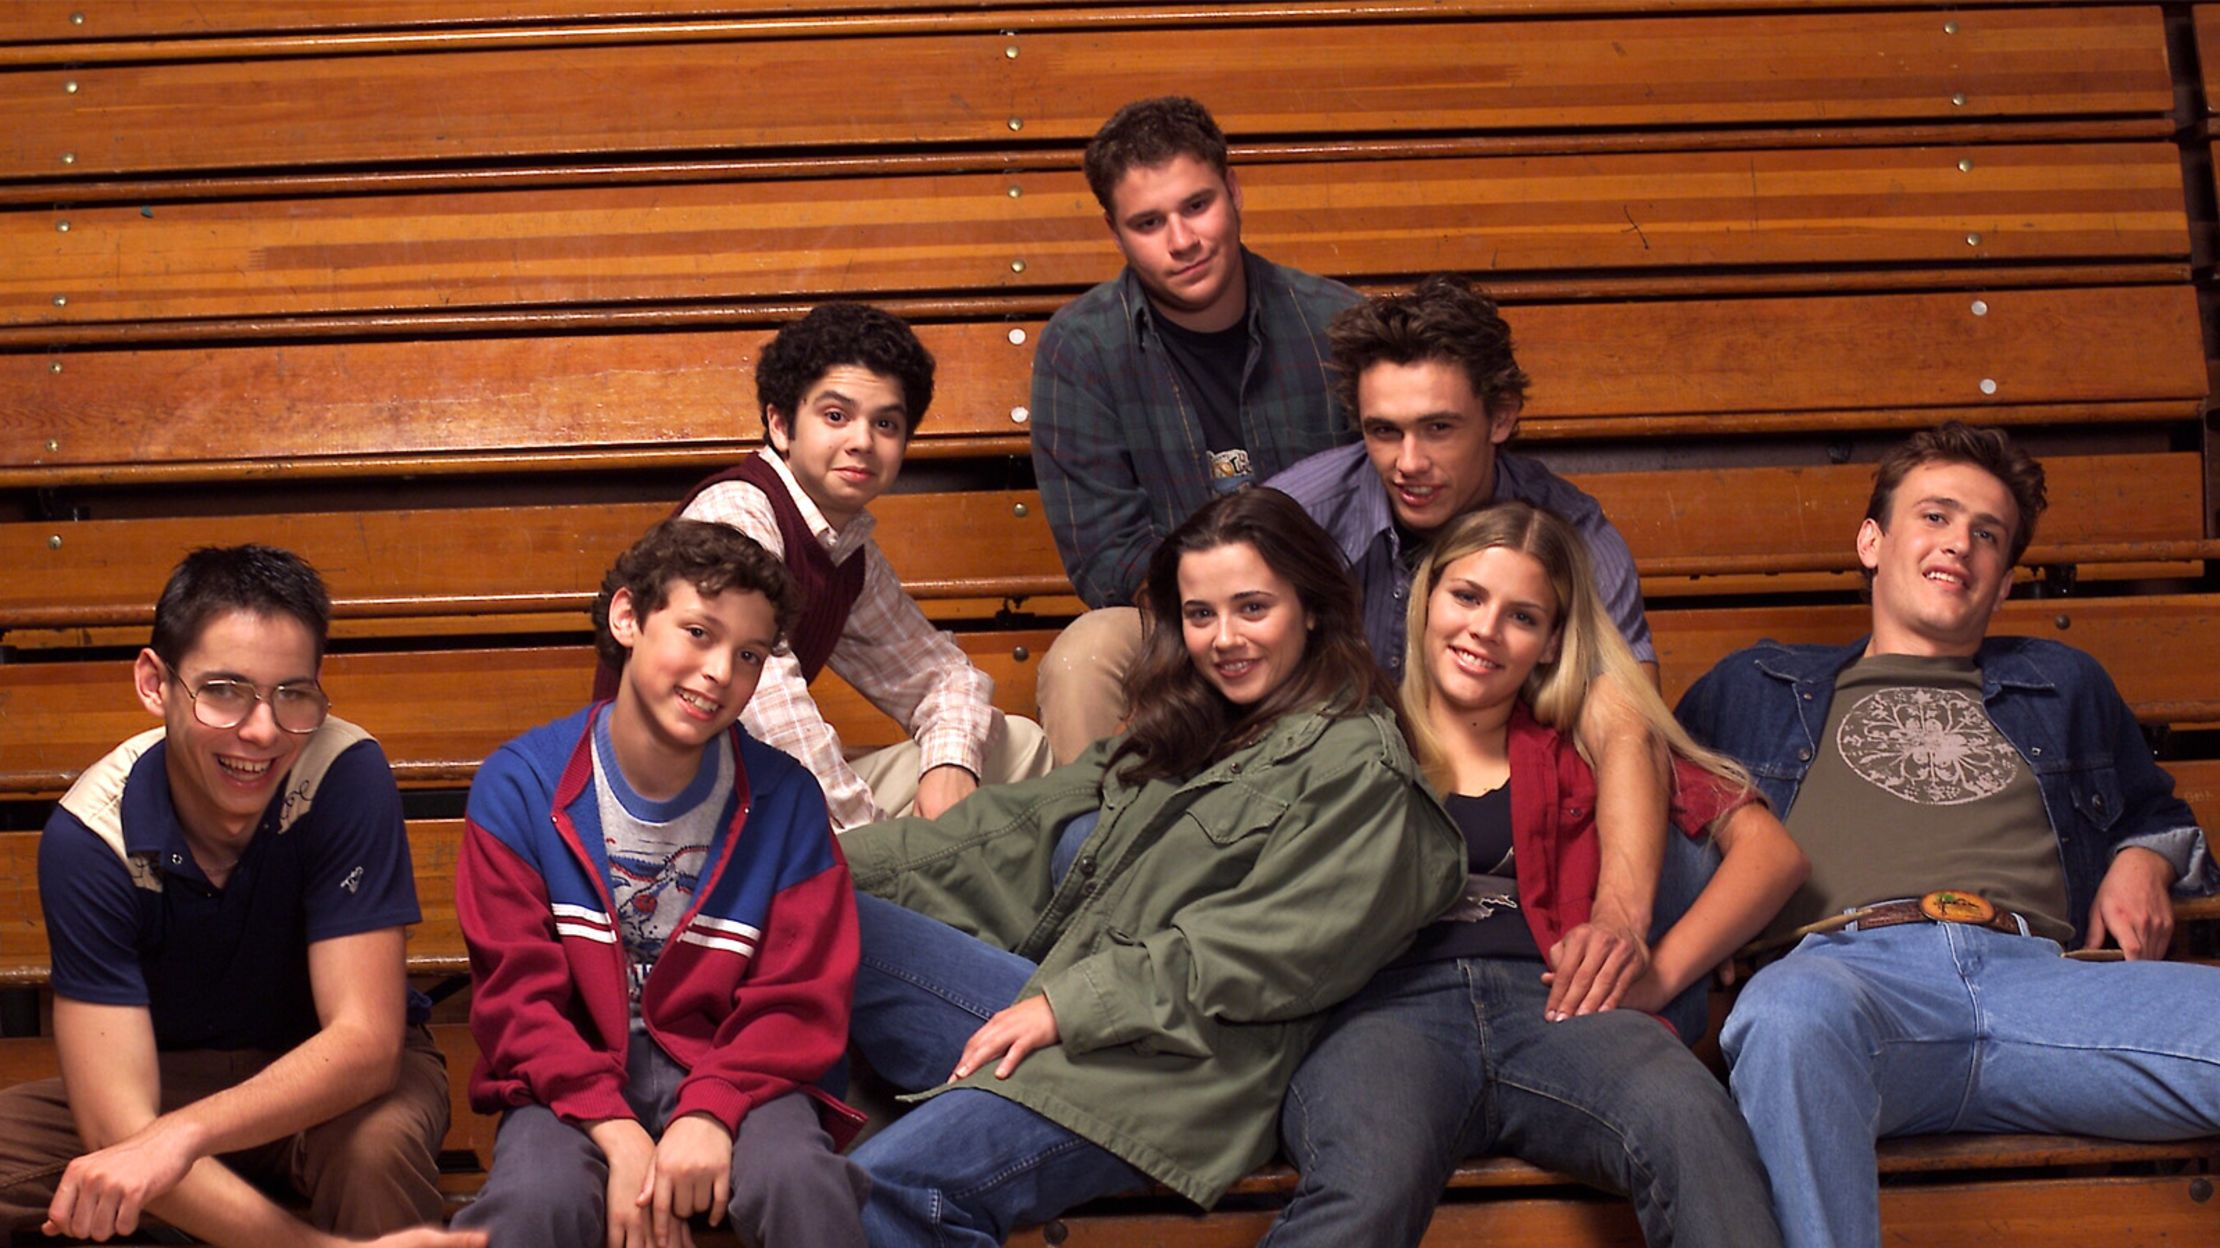 20 Things You Might Not Have Known About 'Freaks and Geeks' | Mental